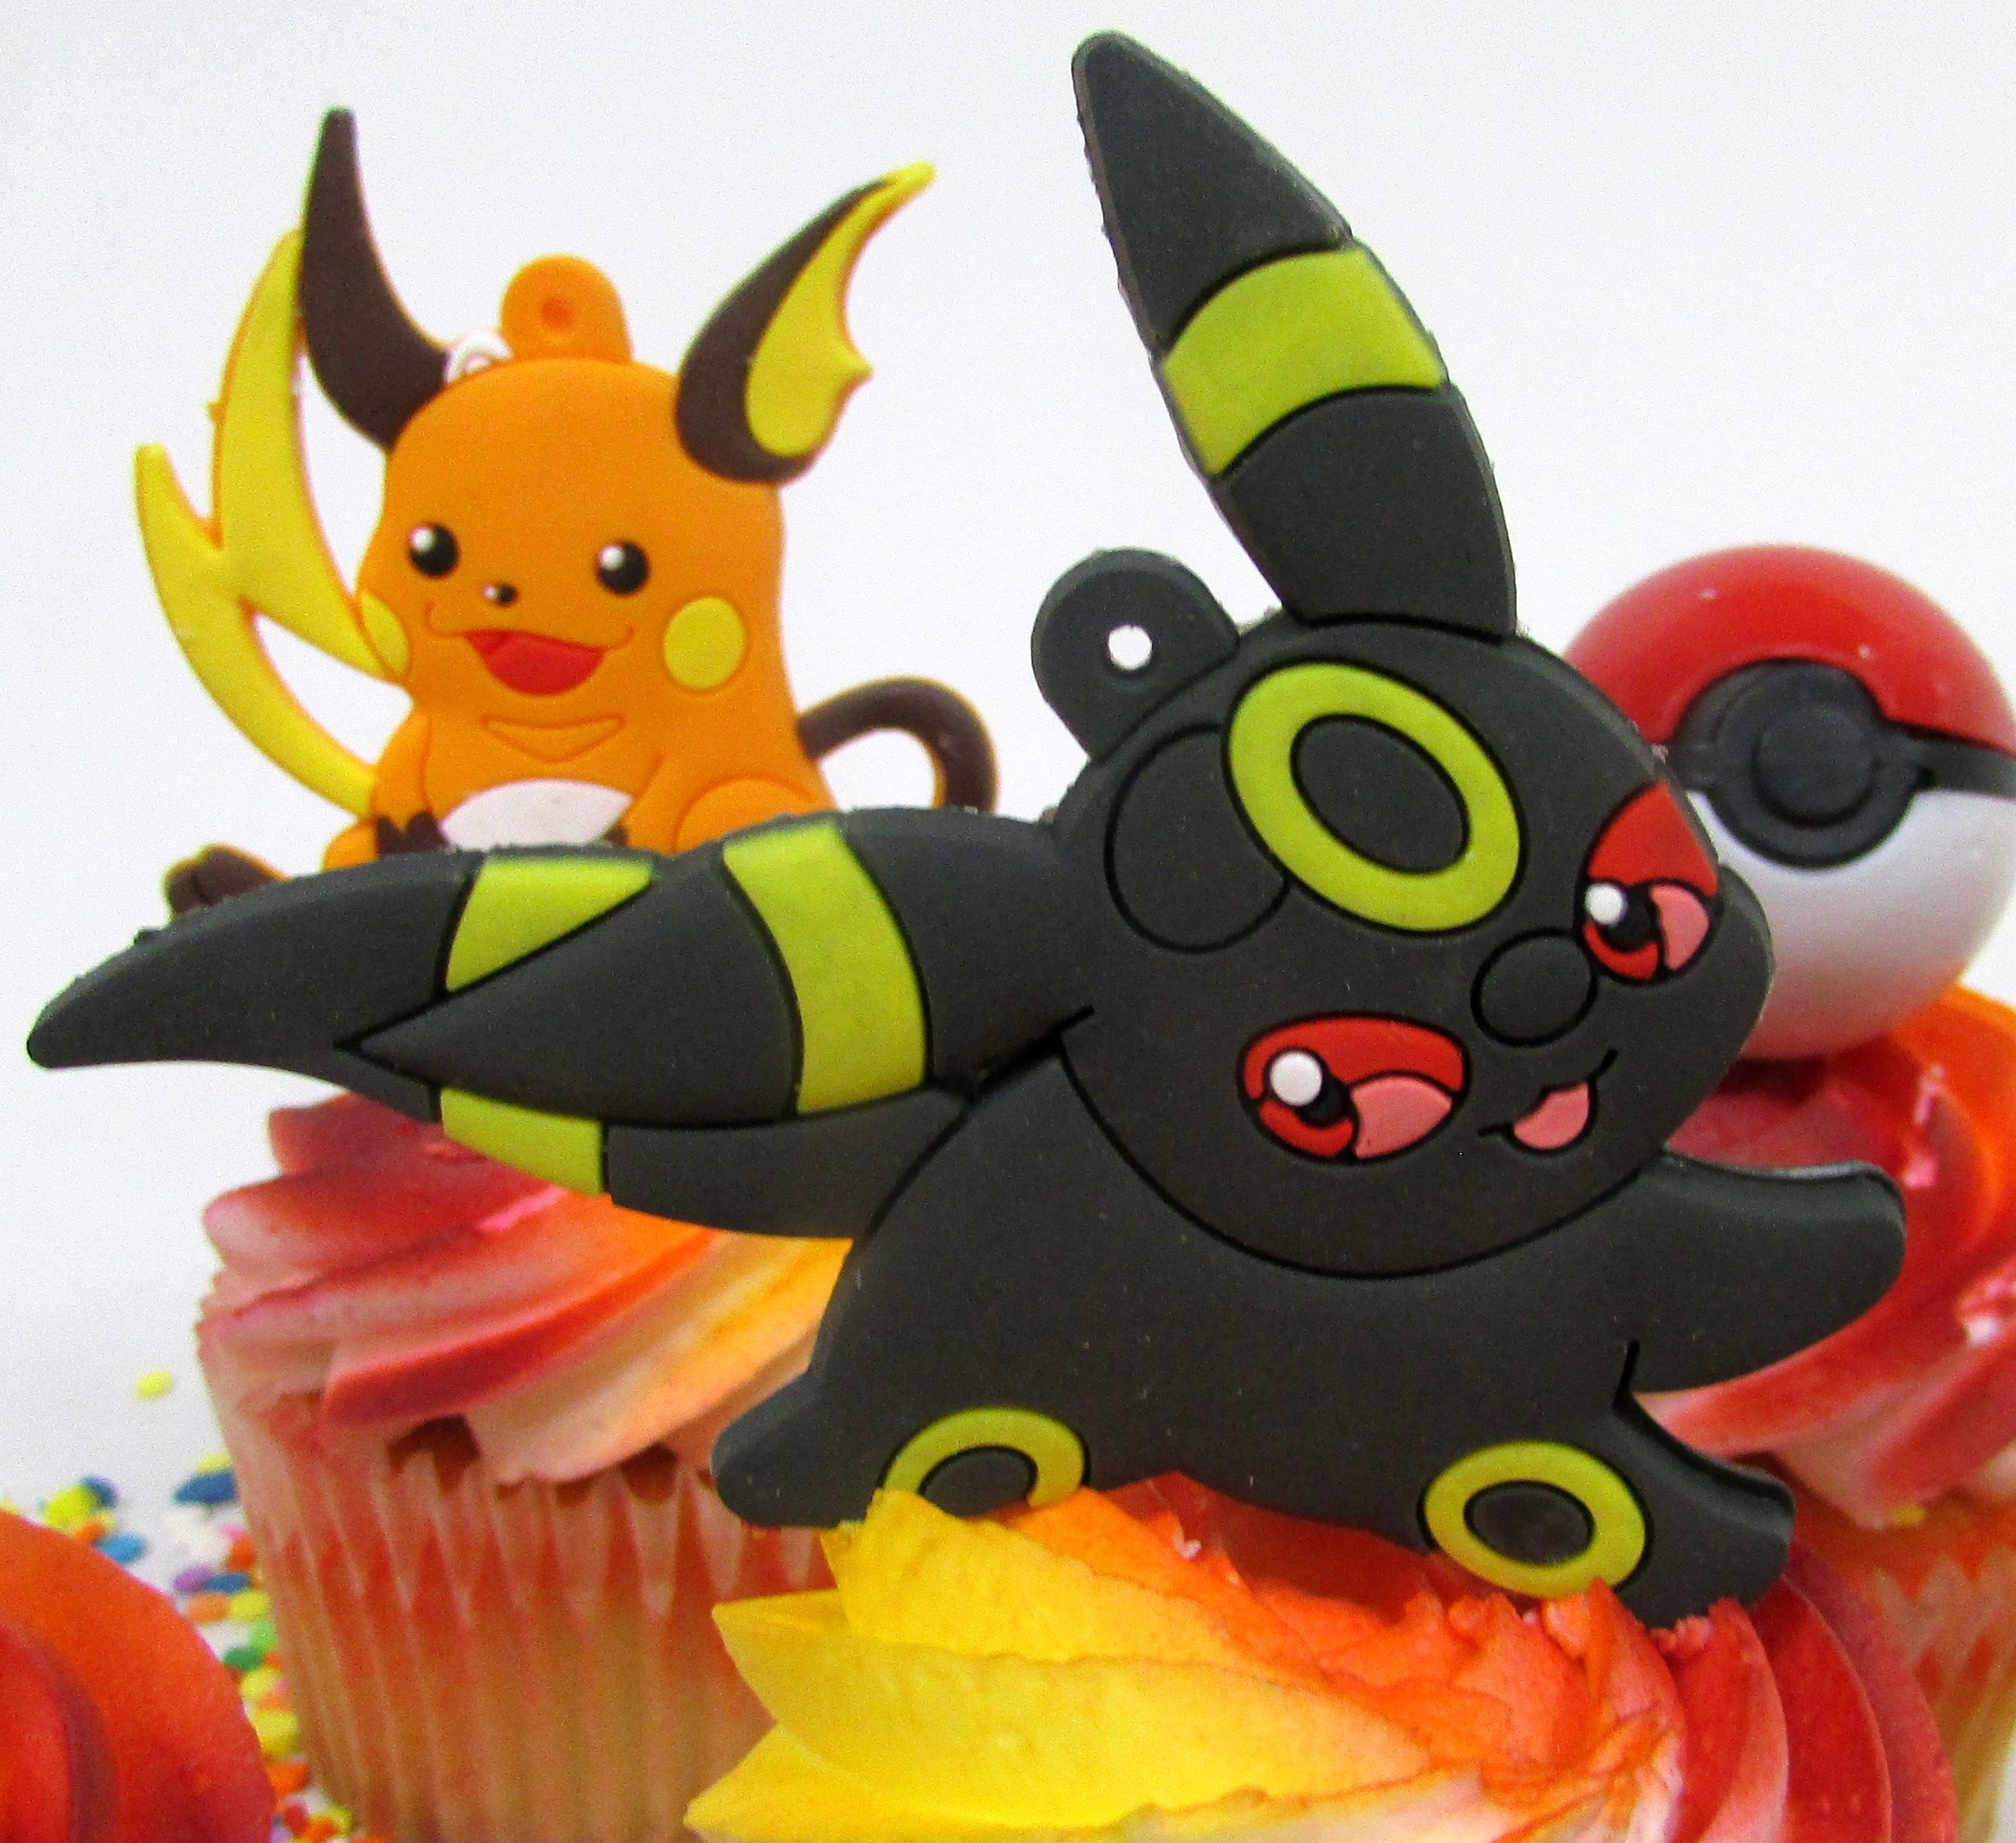 Pikachu and Friends Cupcake Topper Set with 6 Random Pocketmonster Characters and 6 Poke Balls by Cupcake Topper (Image #3)